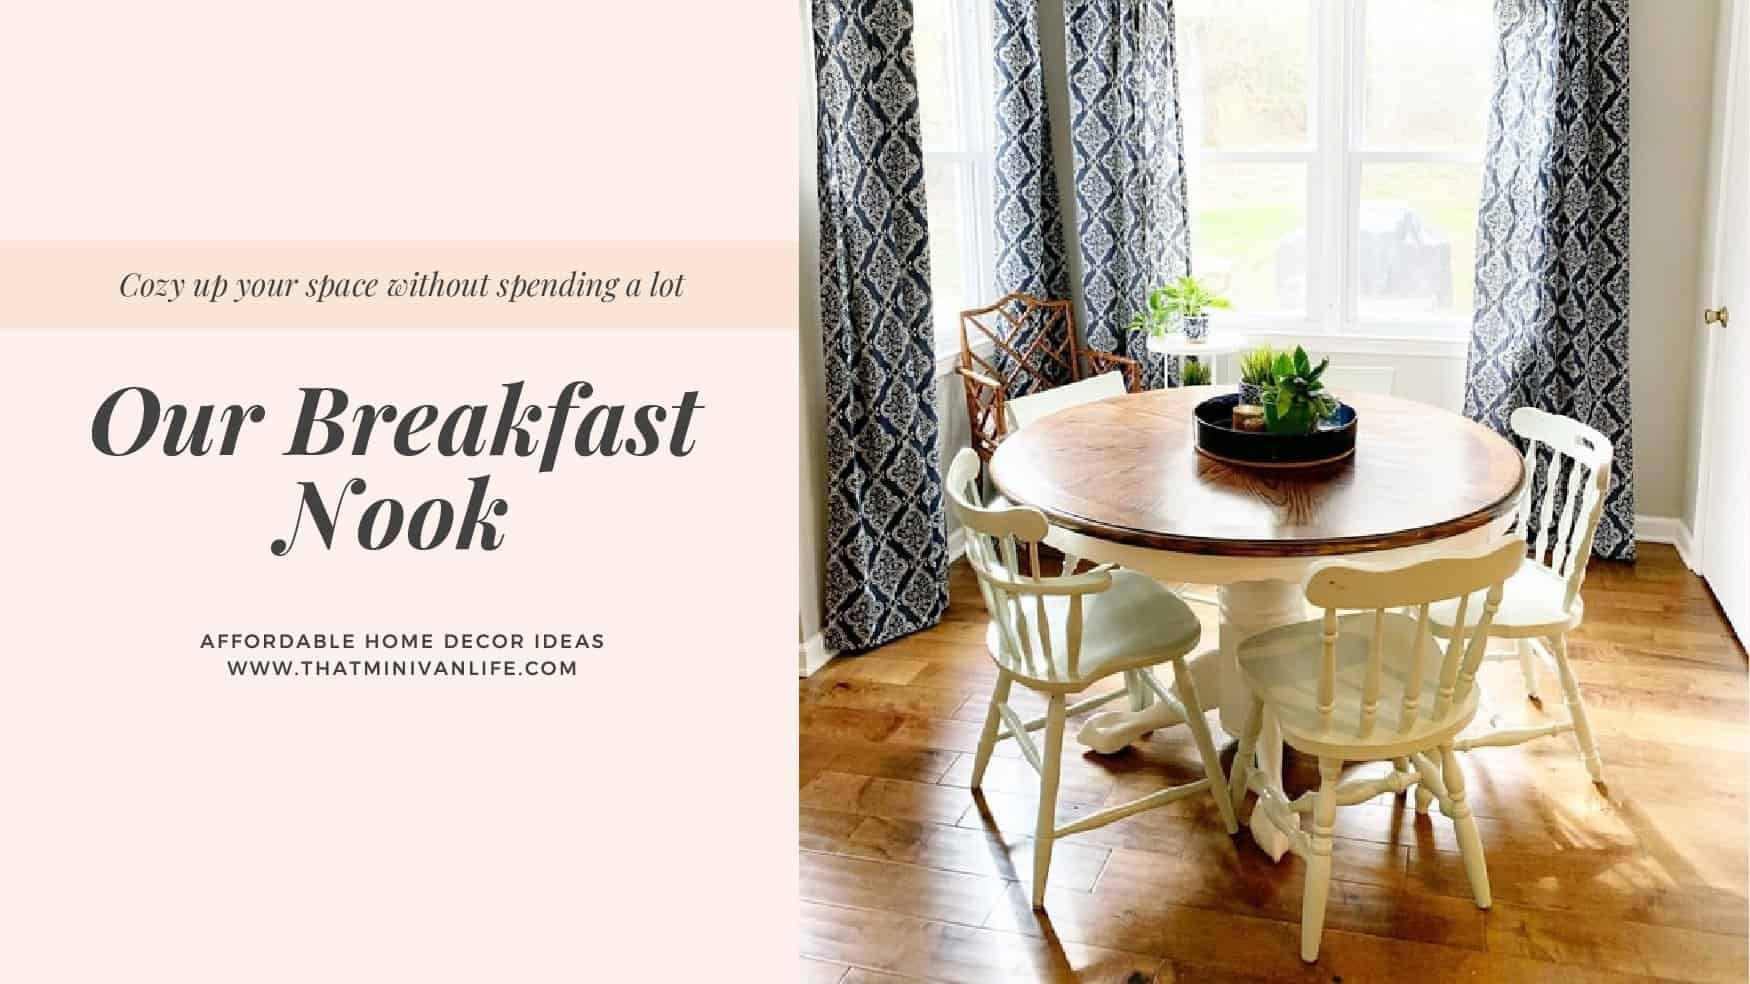 Decorate your breakfast nook on a Budget